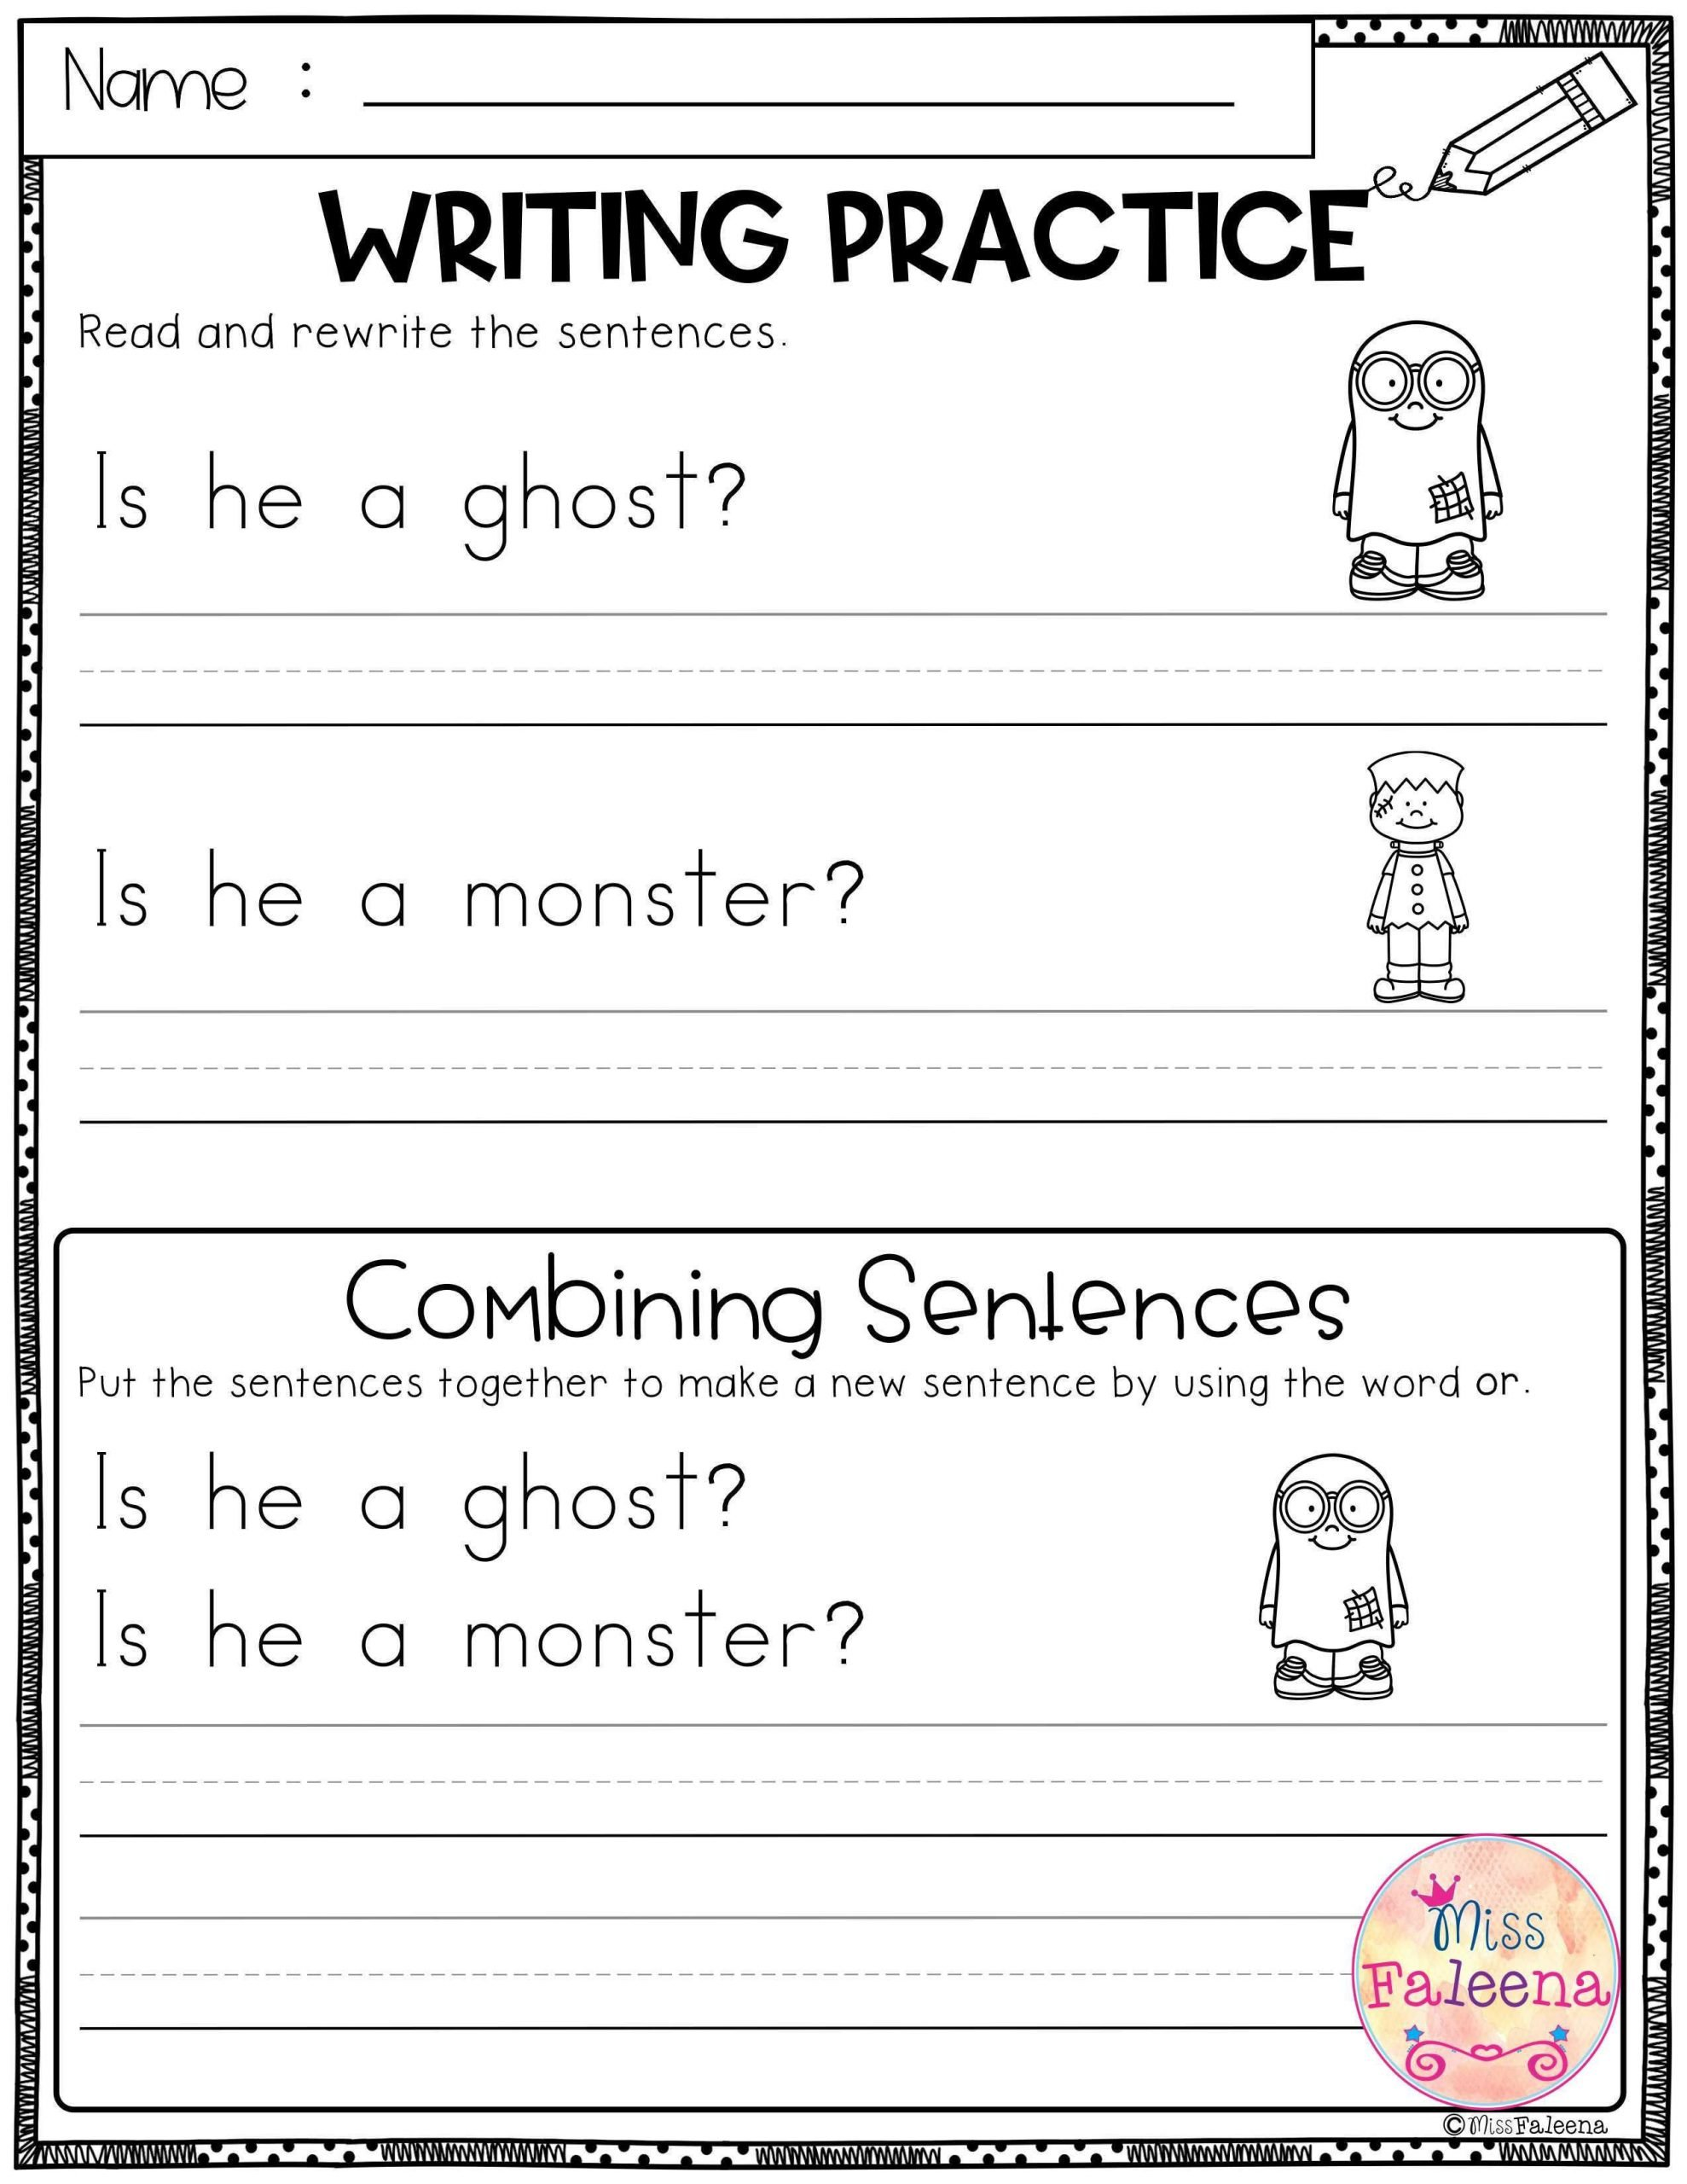 Combining Sentences Worksheets 5th Grade October Writing Practice Bining Sentences